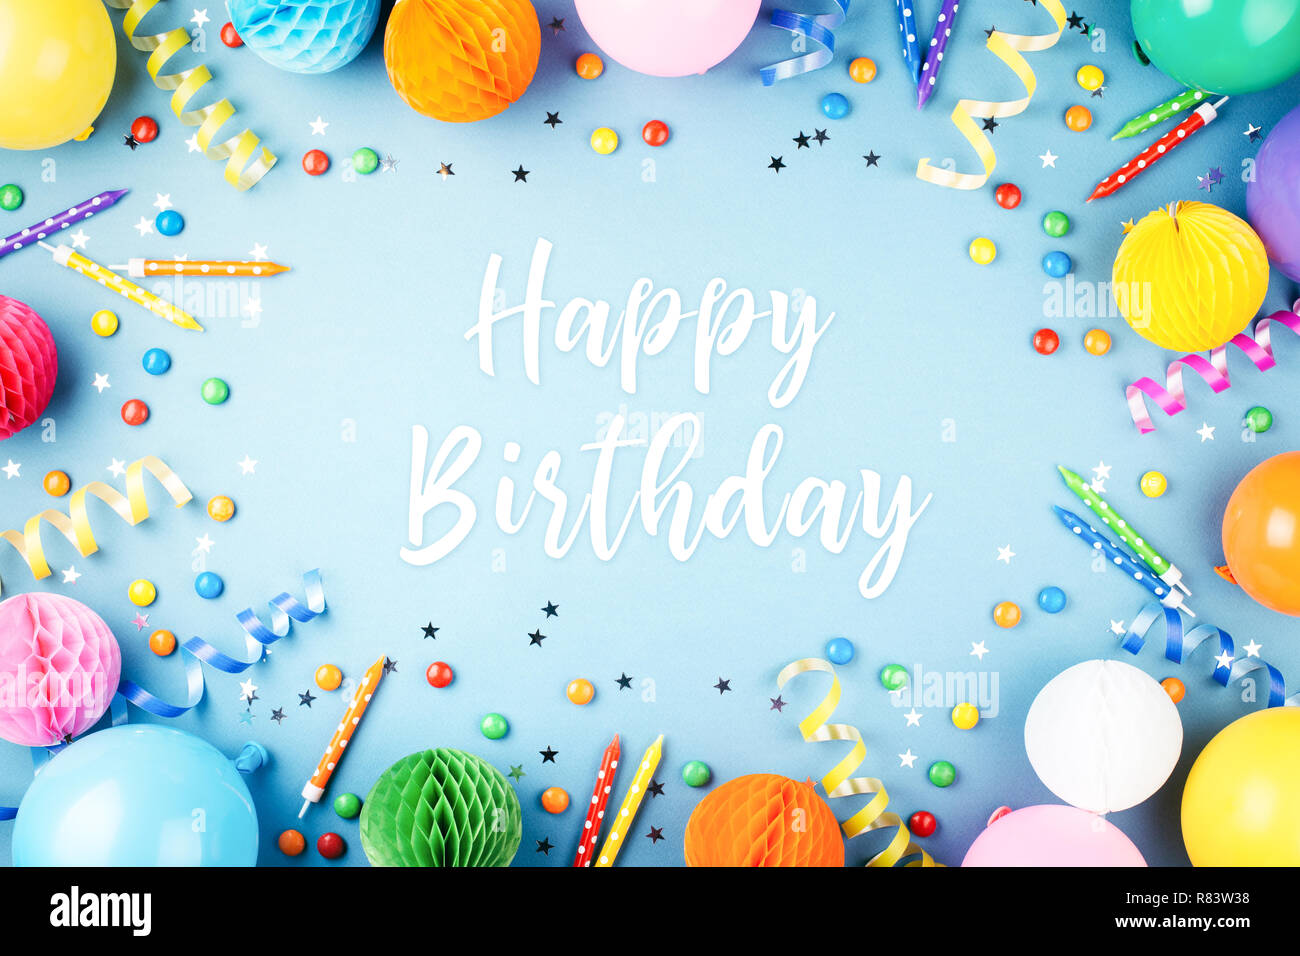 Birthday Party Background With Happy Birthday Greeting Text On Blue